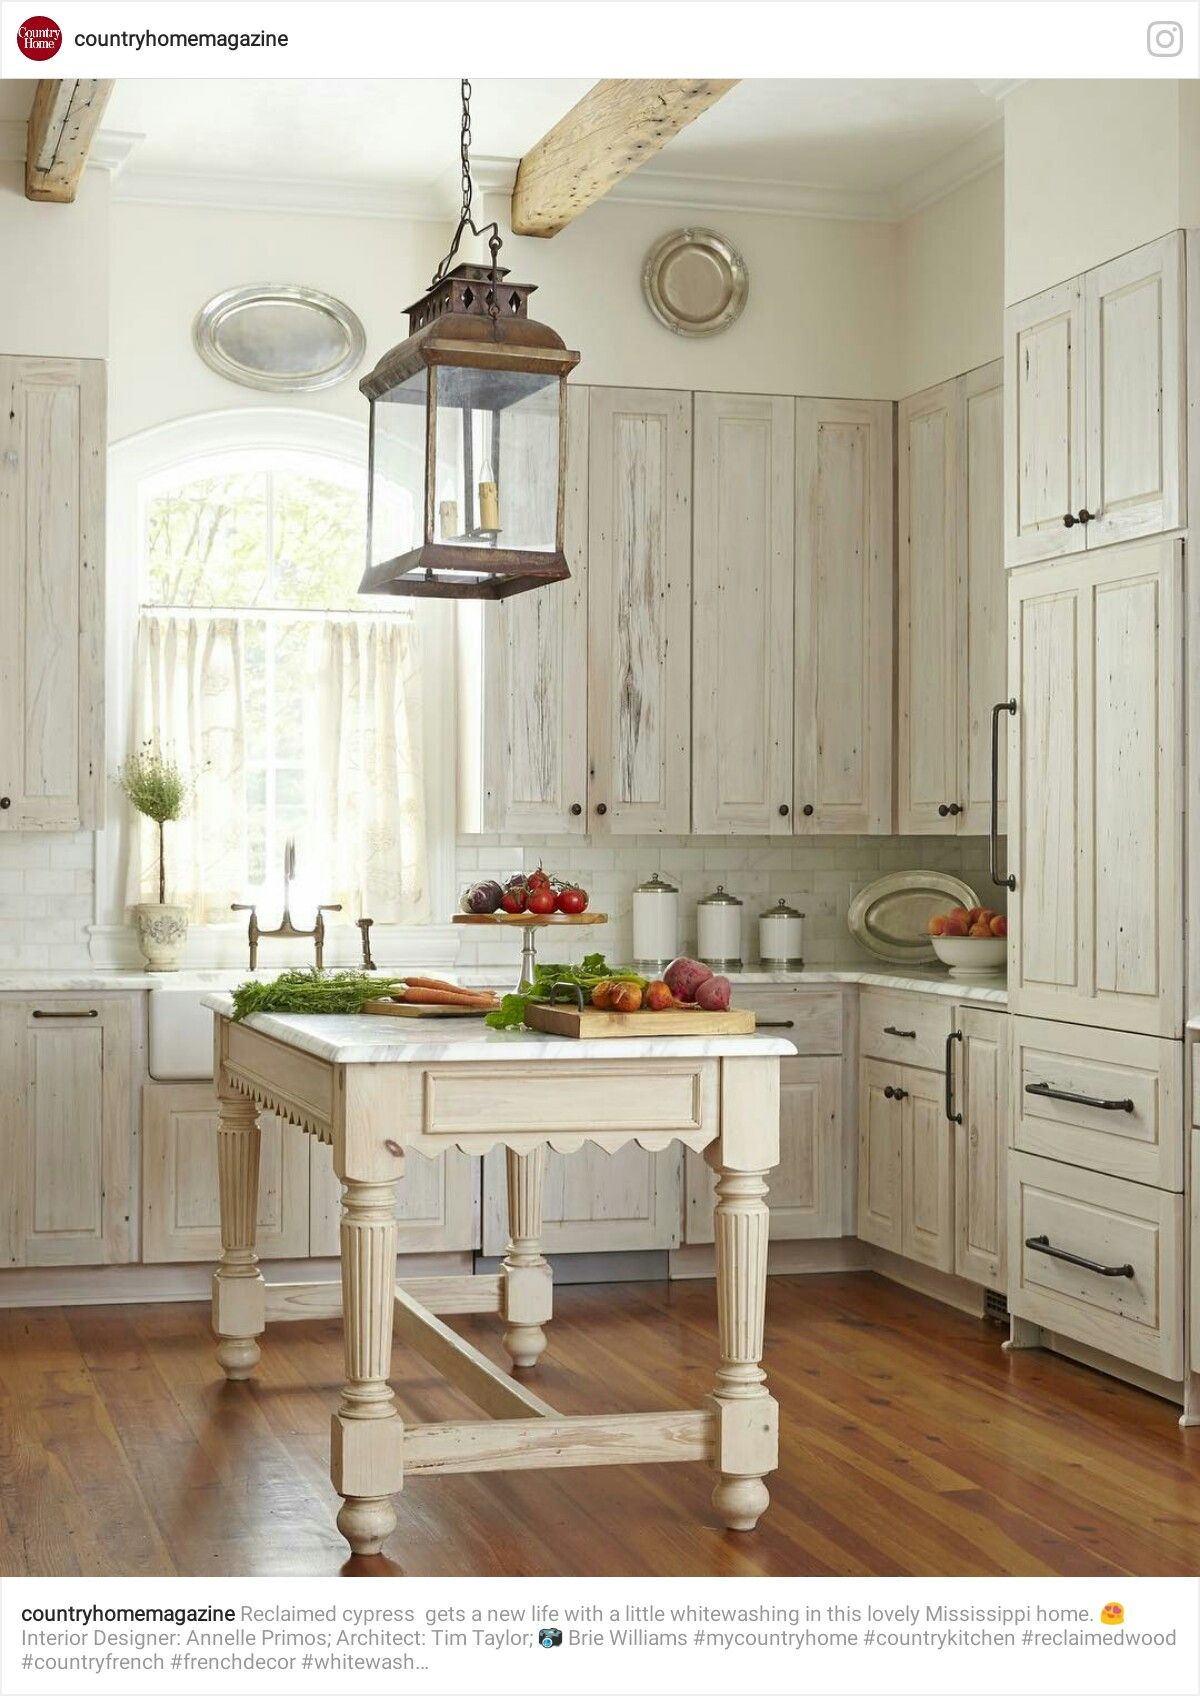 Pin By Yonnie Smith On Stylish Kitchens The Farmhouse Country Look With Images Kitchen Cabinets Decor Home Decor Kitchen Whitewash Kitchen Cabinets